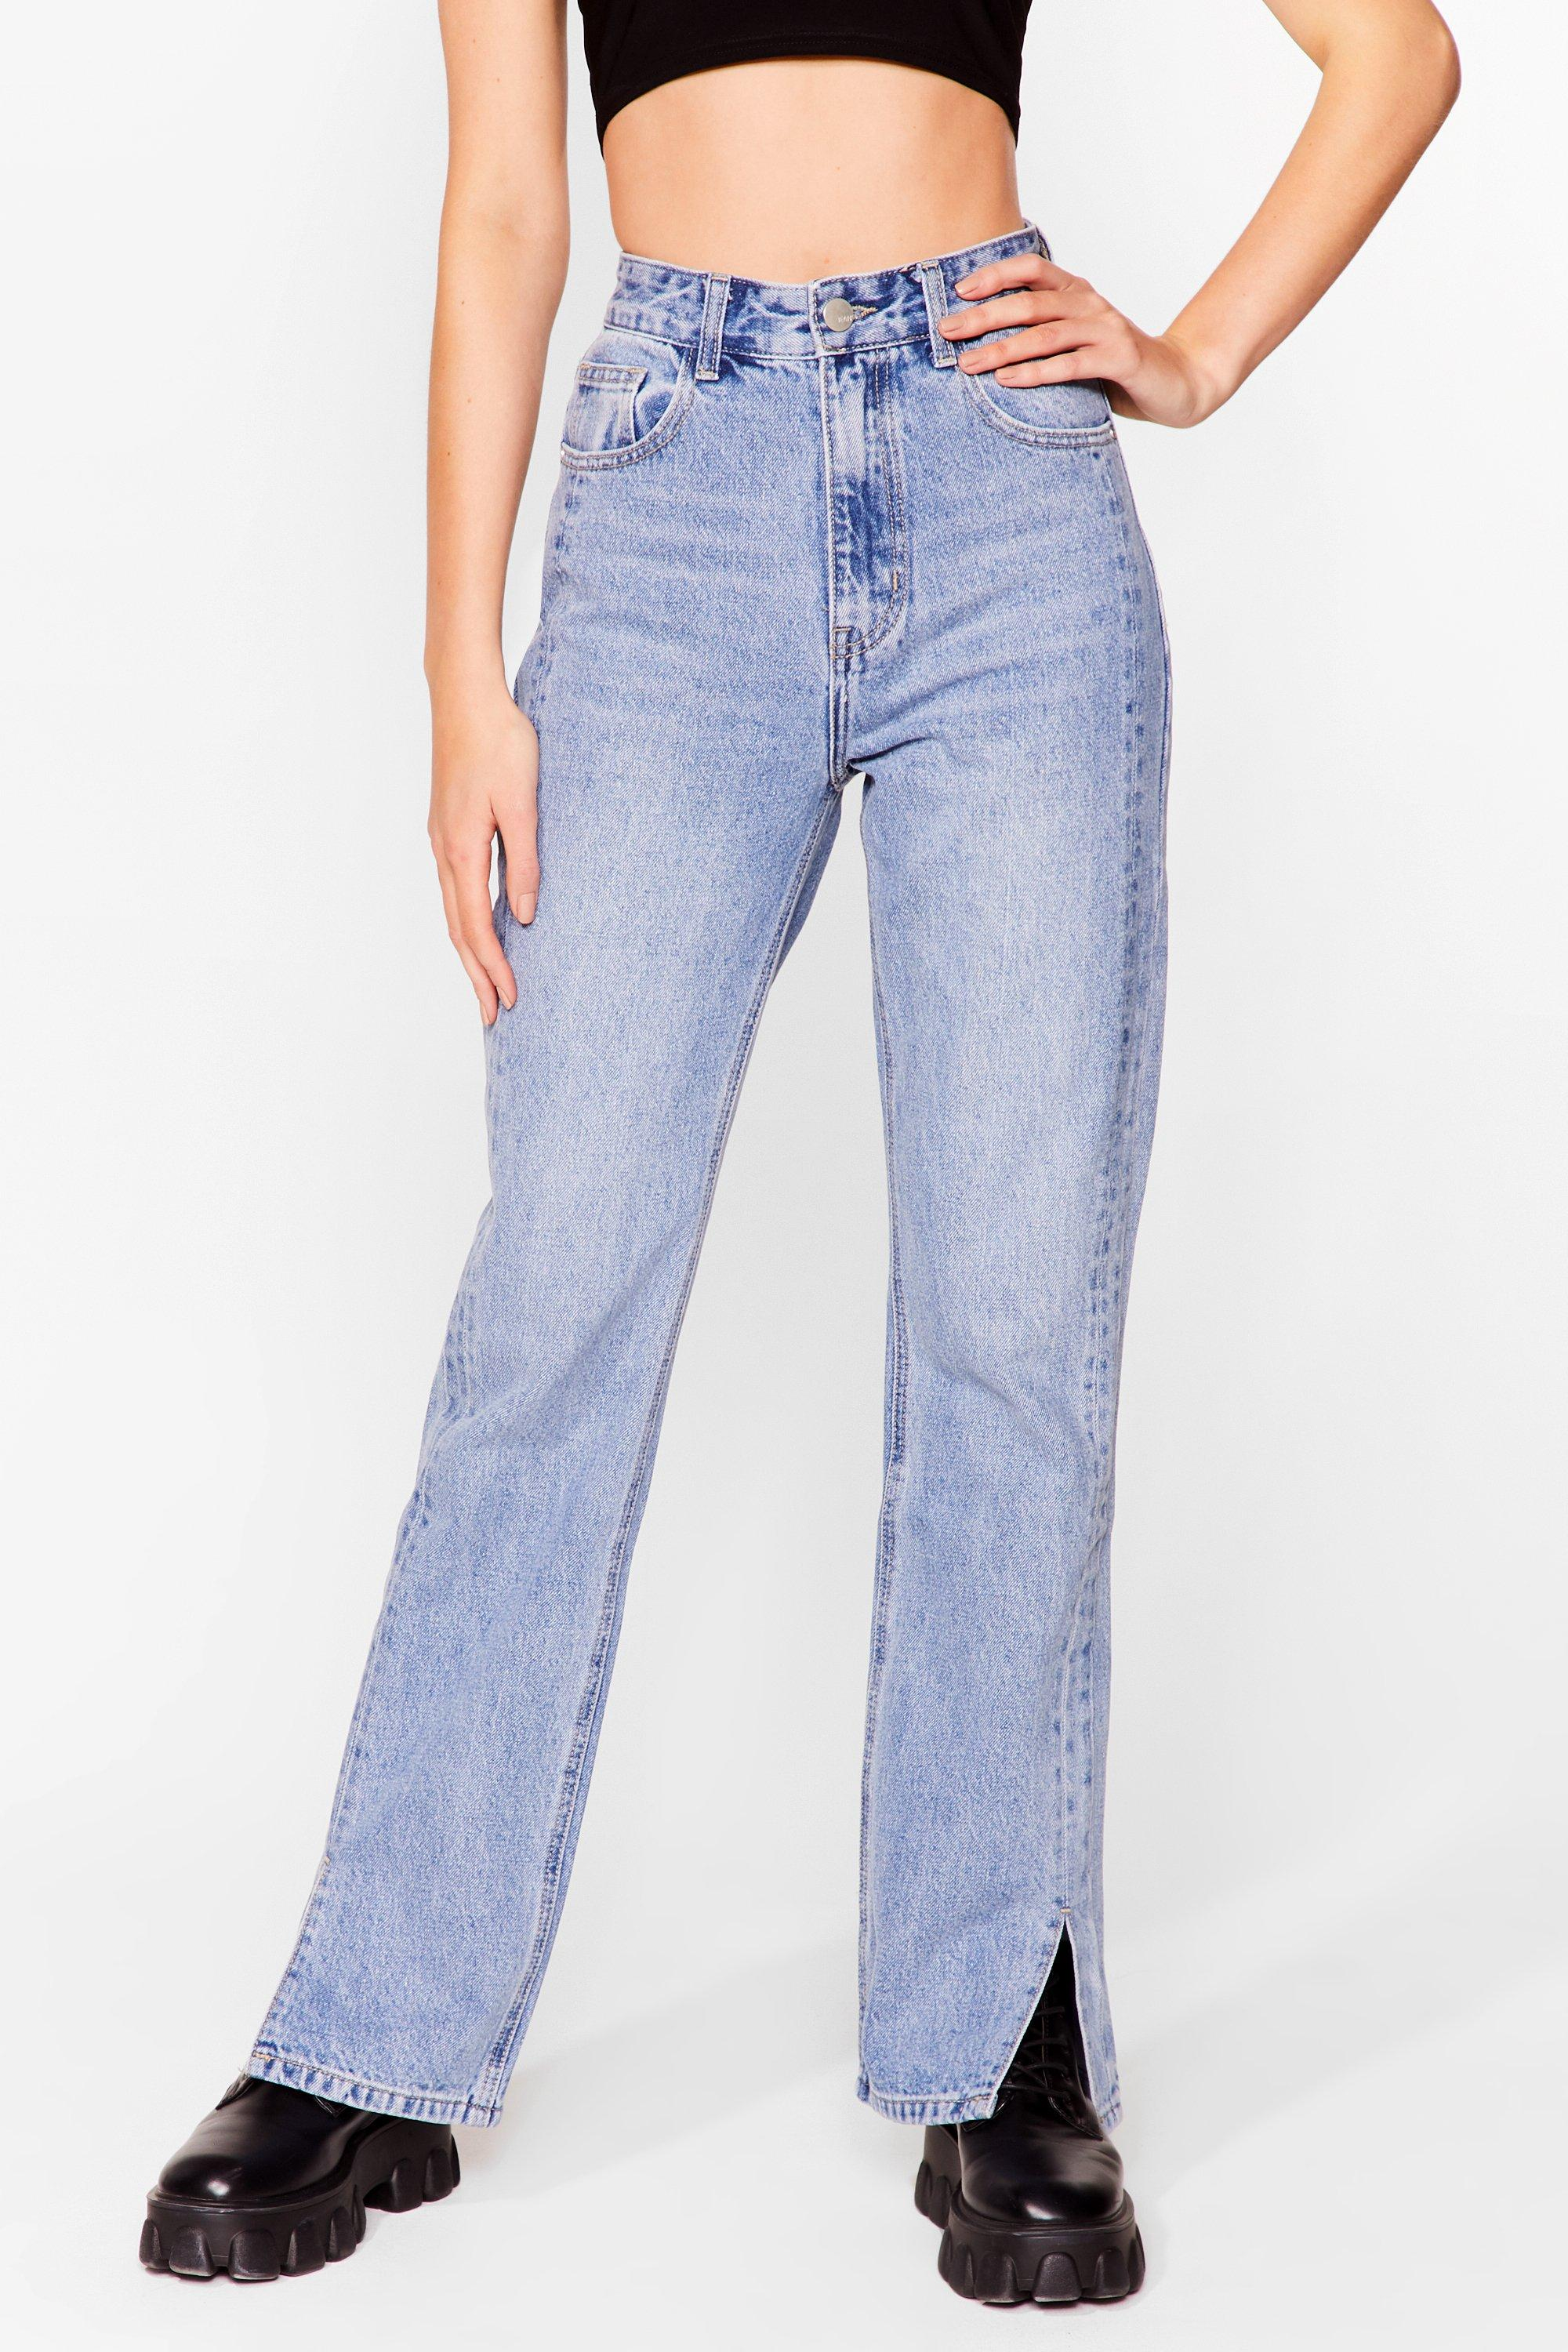 Image of Womens Slits Down to You High-Waisted Straight Leg Jeans - Blue